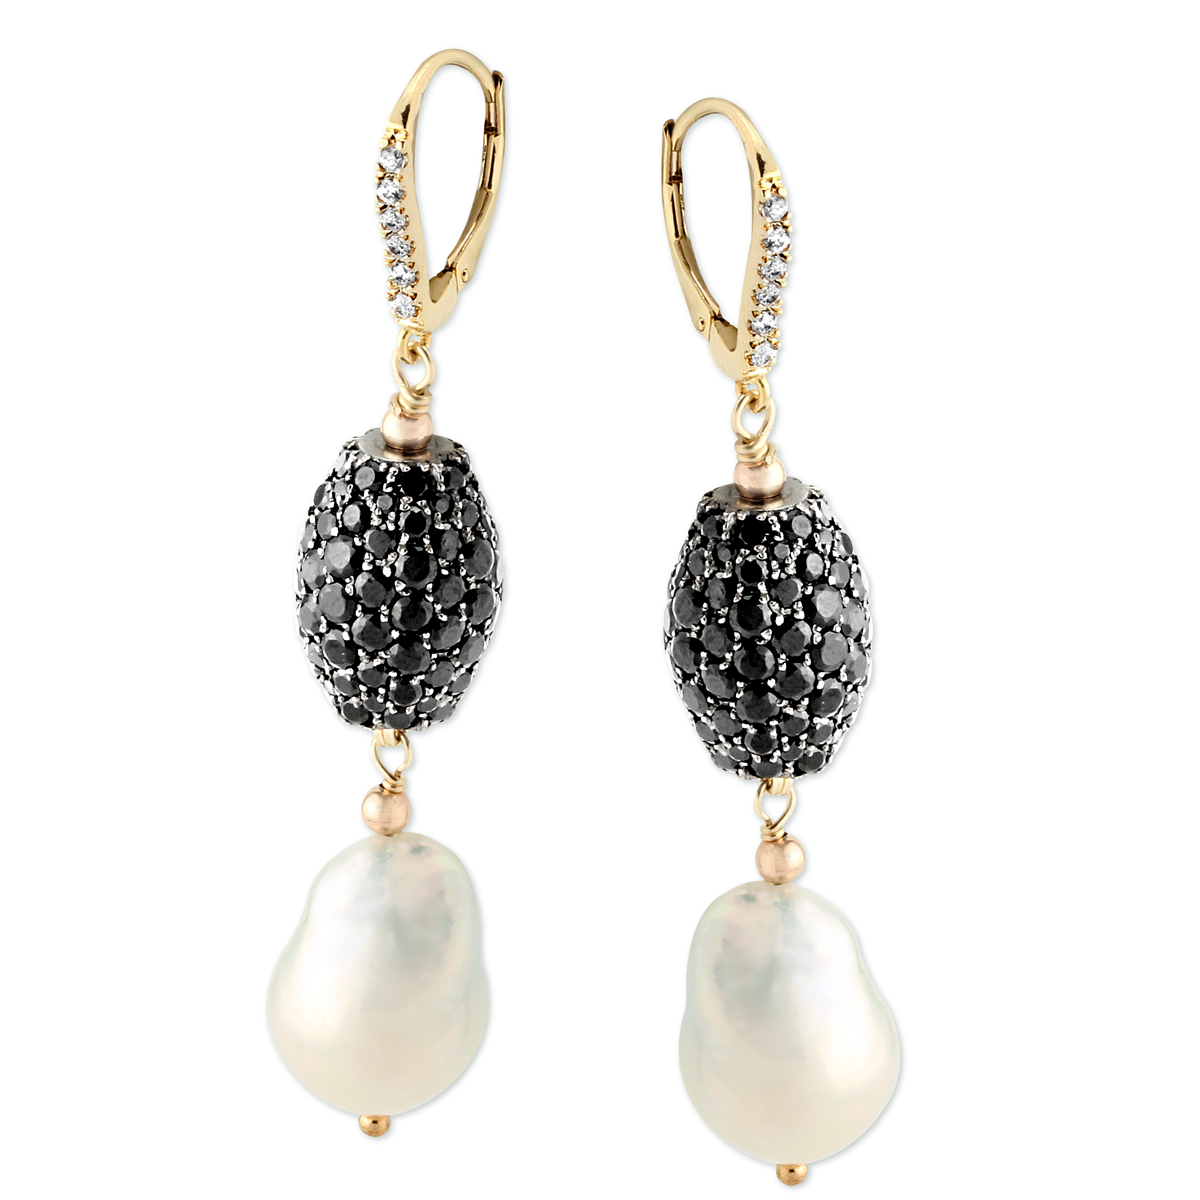 343099-Black Spinel and Baroque White Freshwater Pearl Earrings